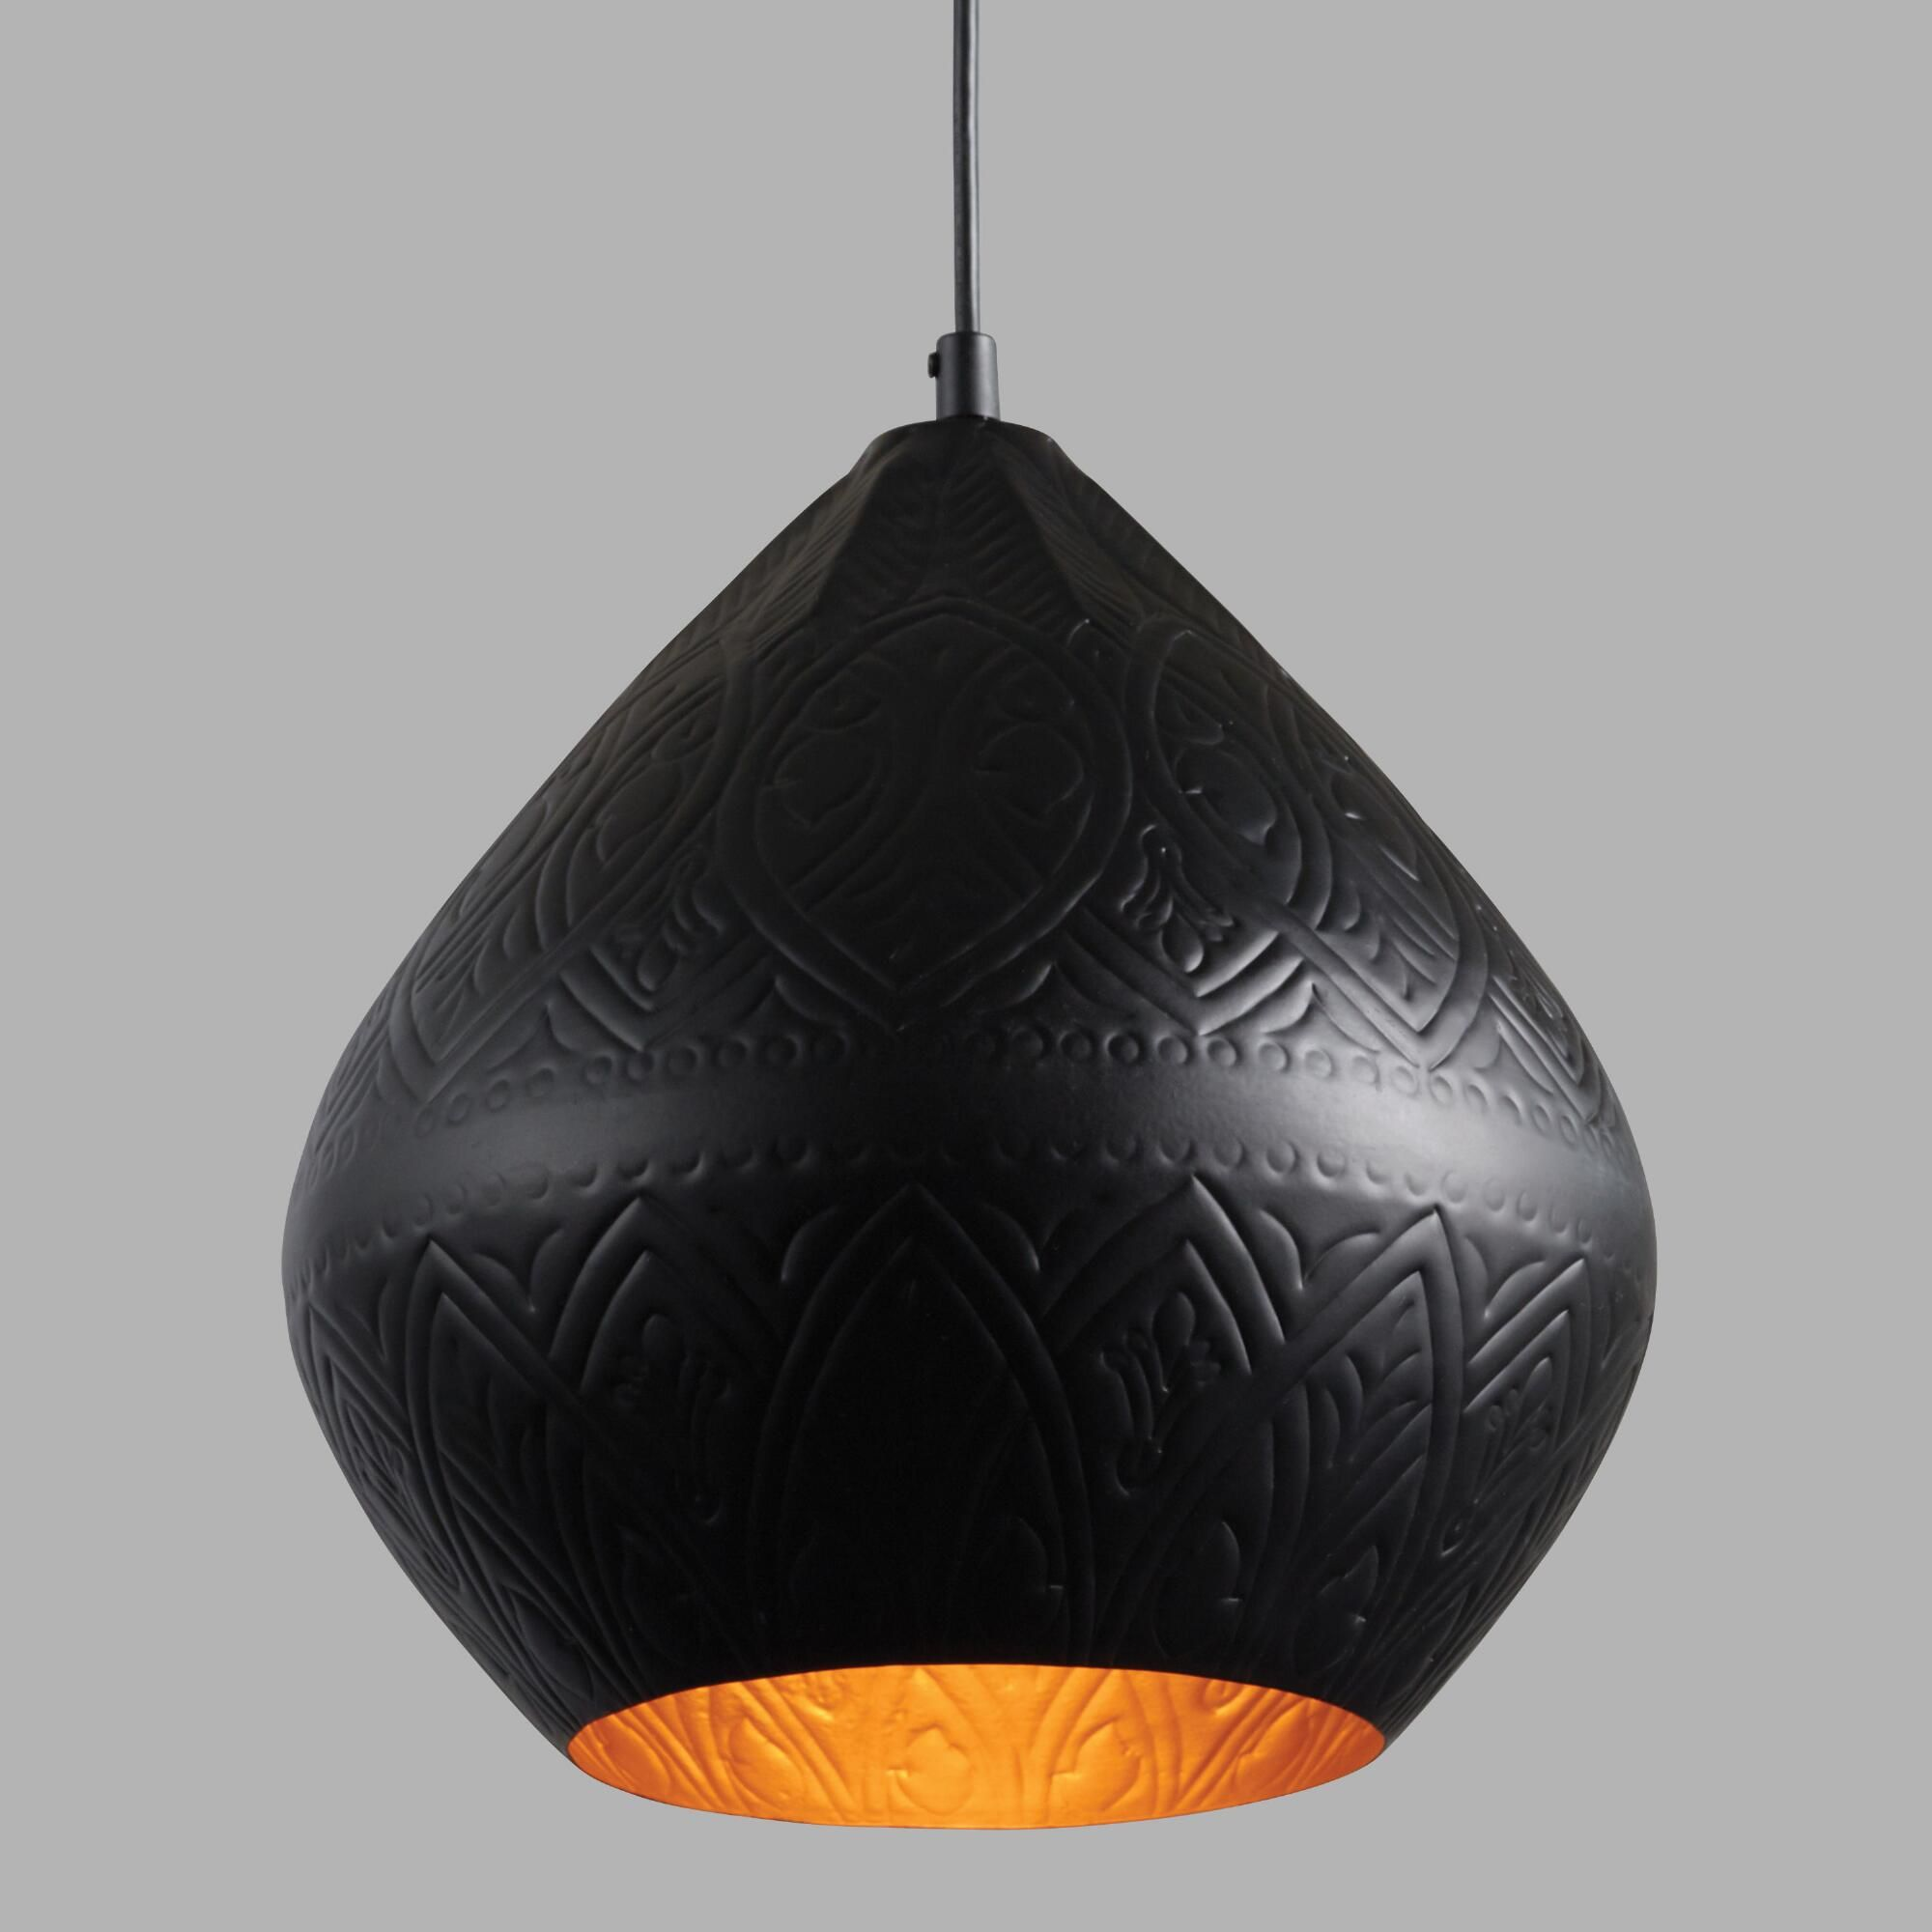 Black and Gold Teardrop Sachi Pendant Lamp by World Market is part of Gold Home Accessories Lamps - Pendants And Chandeliers Handcrafted by Indian artisans, our exclusive pendant lamp features a bold teardrop shape with a matte black exterior and a matte gold interior  An intricate design is embossed across its entire surface, drawing the eye with its subtle texture  Material , ColorBlack  Also could be used forhanging lamp,hanging decor,home decor,decor,hanging light,light,lighting,dining room lighting,kitchen lighting,living room lighting,hanging pendant,pendant lamp,pendant light,metal,artisan,subtle design,intricate design  By Cost Plus World Market 549969